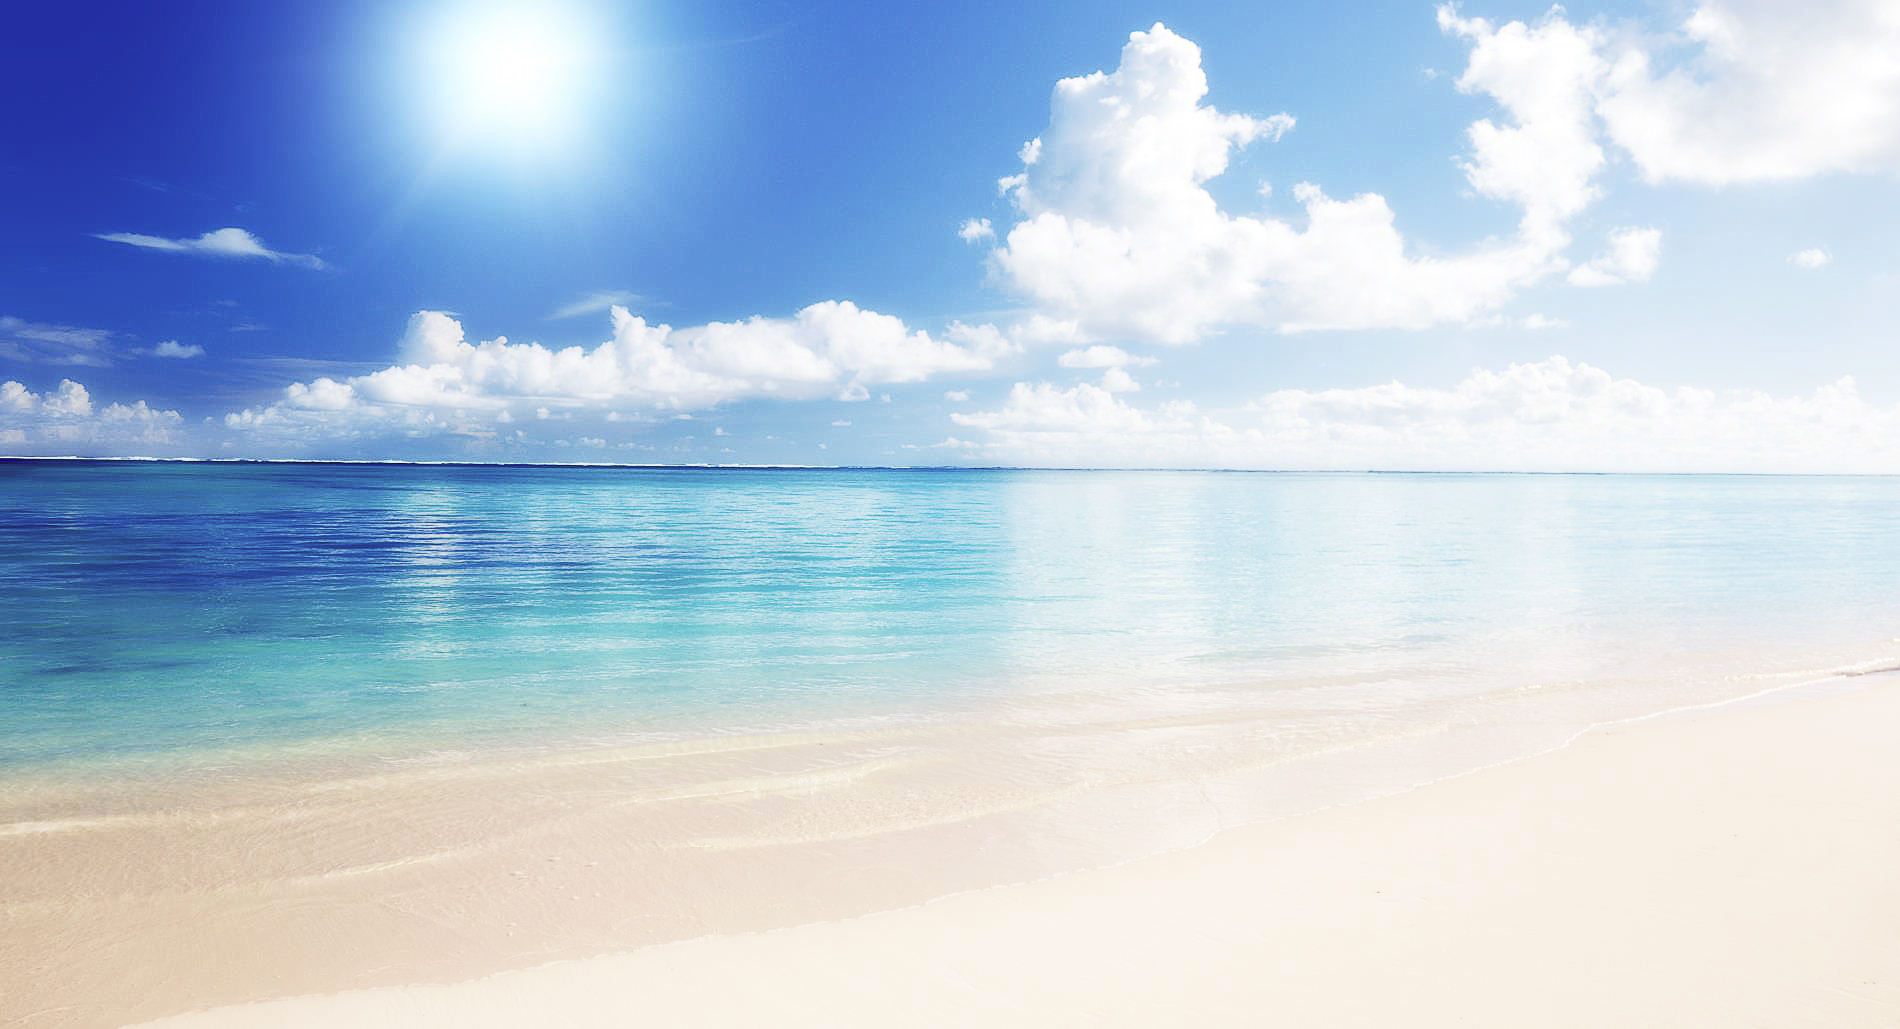 16 Beach Backgrounds PSDGraphics Images - Beach Sand ...